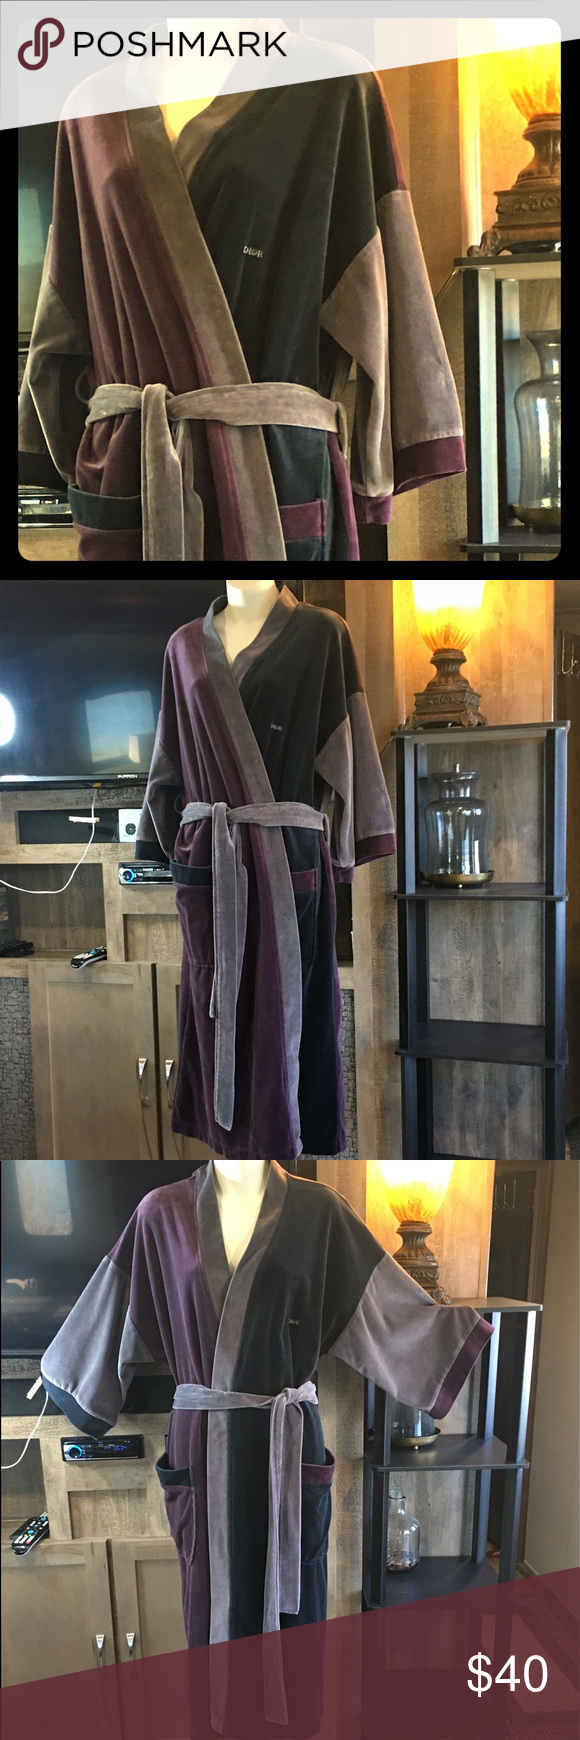 """👑CHRISTIAN DIOR VELOUR DELUXE ROBE 👑CHRISTIAN DIOR VELOUR VELVETEEN DELUXE ROBE 47"""" LONG FROM TOP OF NECKLINE. PLUSH TWO LOOP TIE. NO STAINS RIPS TEARS OR HOLES!! GOOD COMFY SOFT BEAUTIFUL CONDITION!  TAG SAYS DIOR MONSIEUR BUT I WORE FOR A TIME... could go either way. 😍. YOU WON'T WANT TO GET DRESSED! Dior Intimates & Sleepwear Robes"""